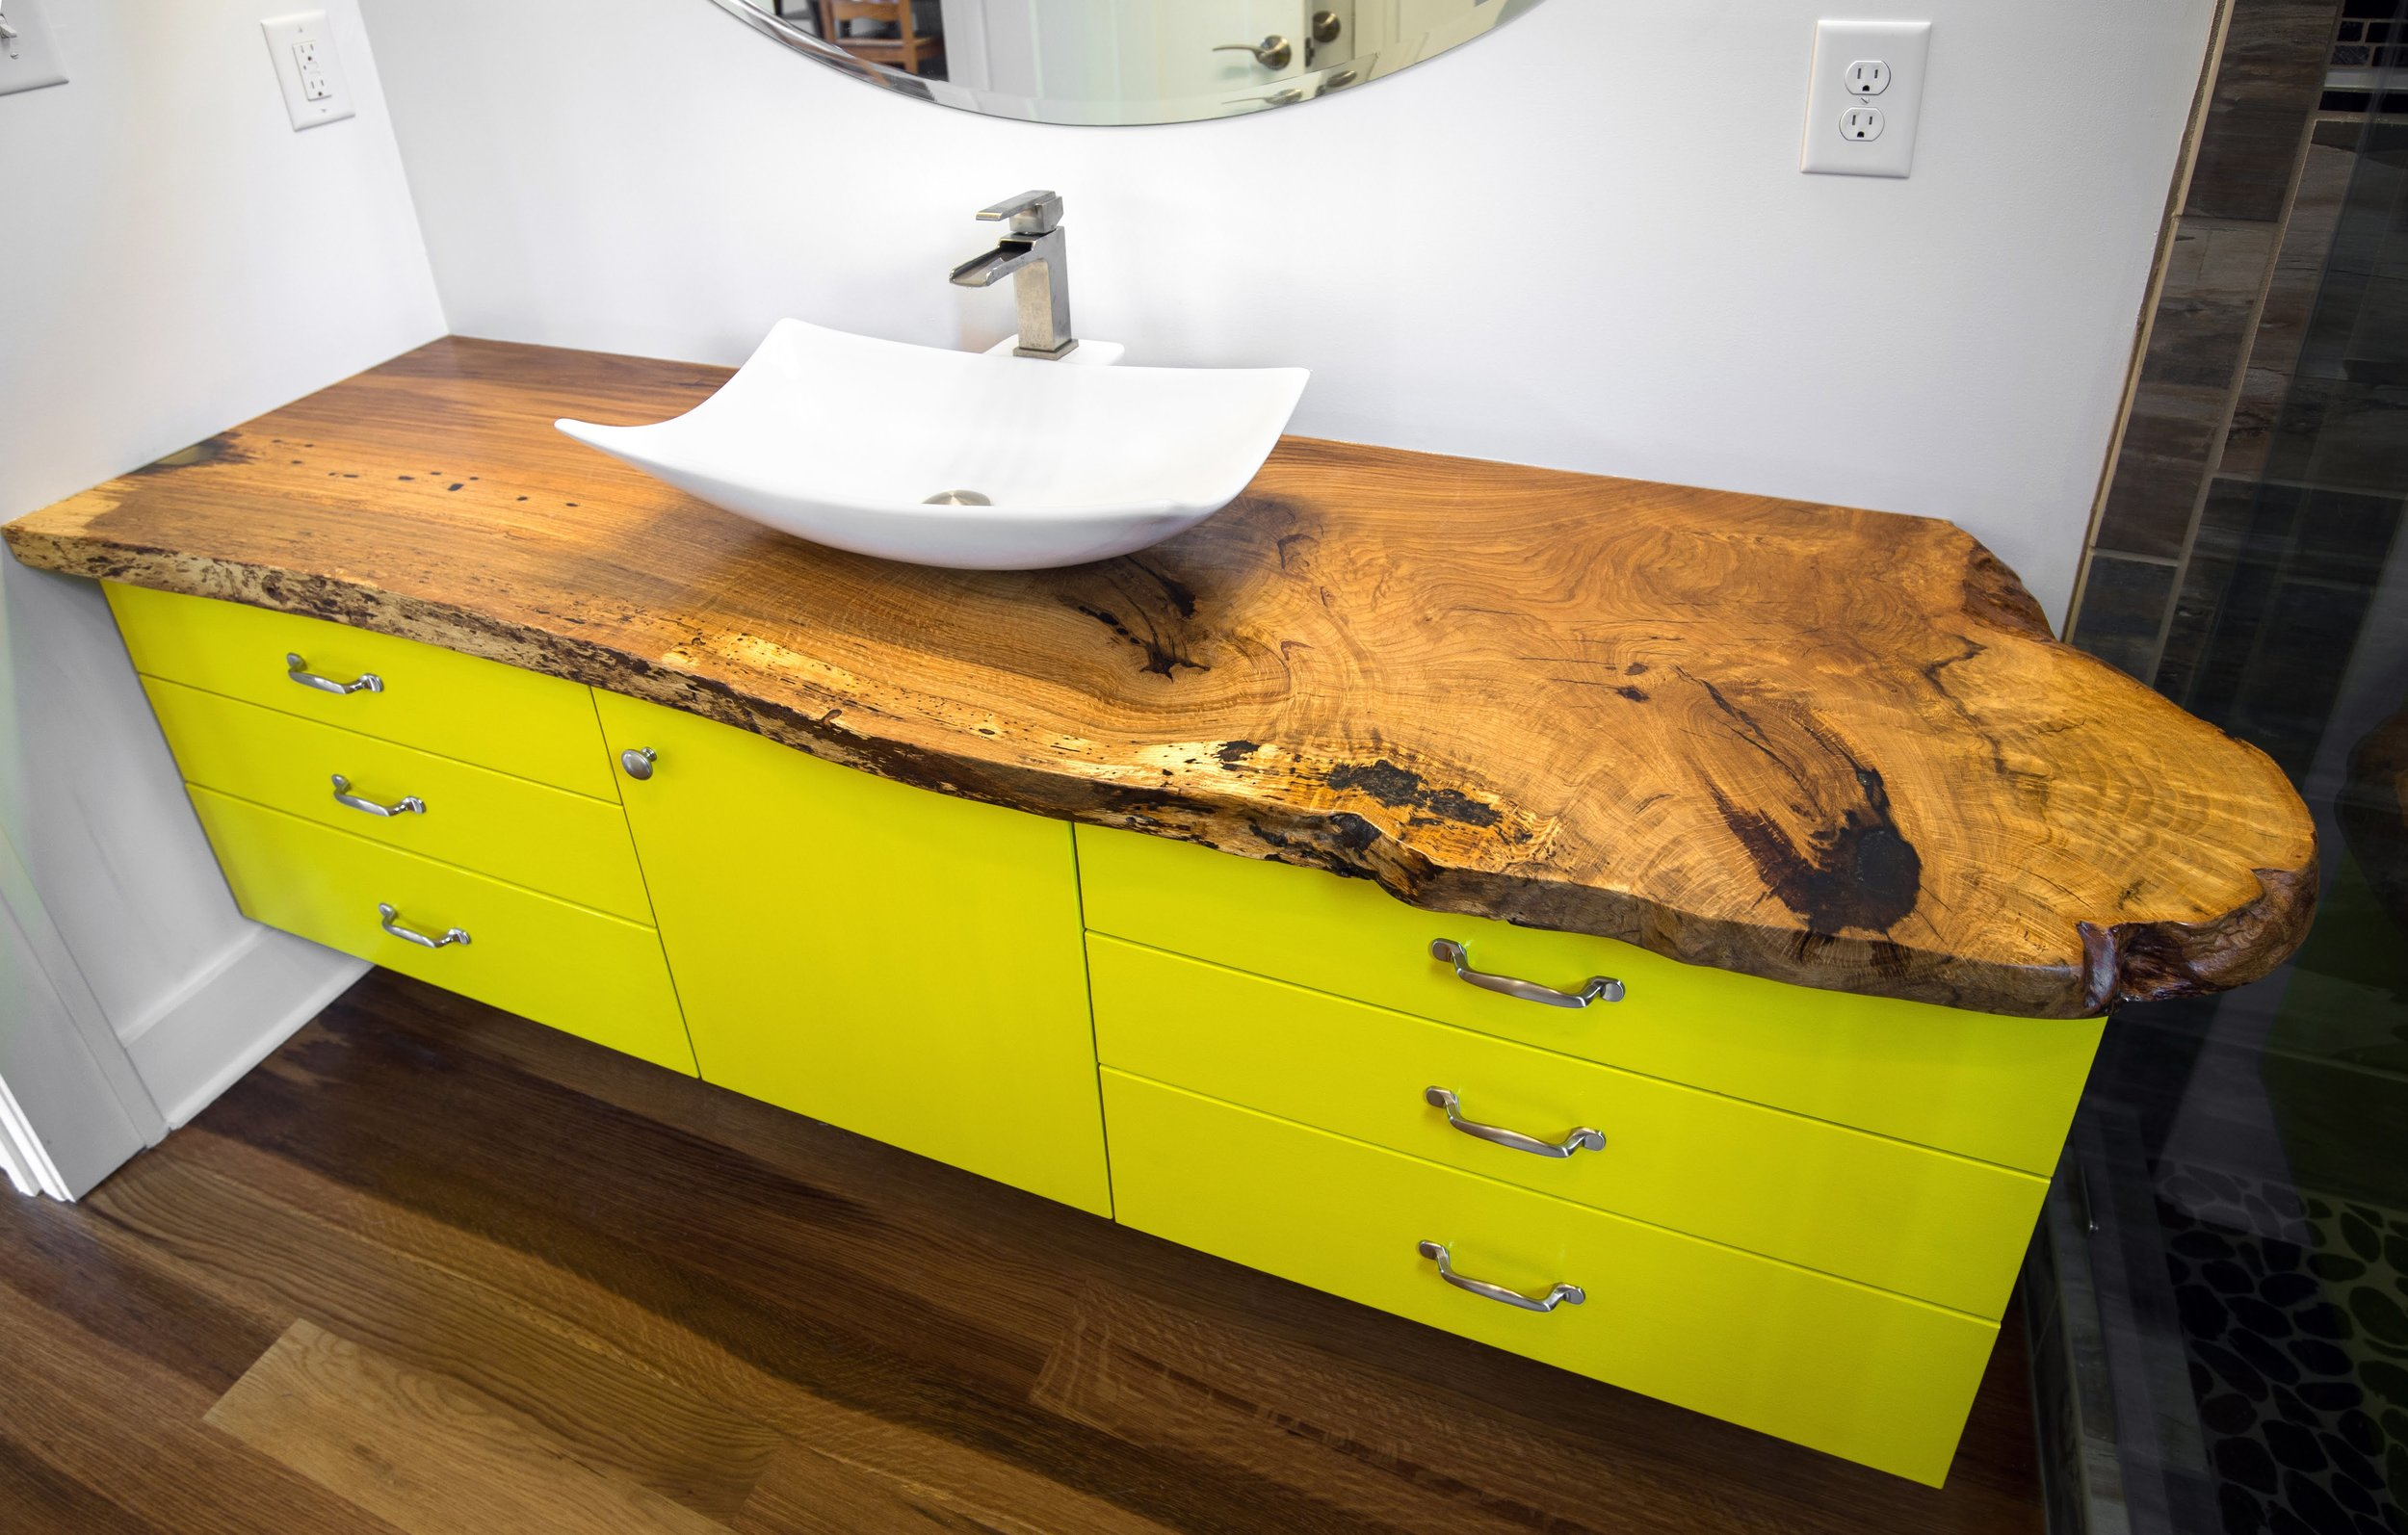 Bathroom Vanity with a Live-edge Black Walnut Countertop